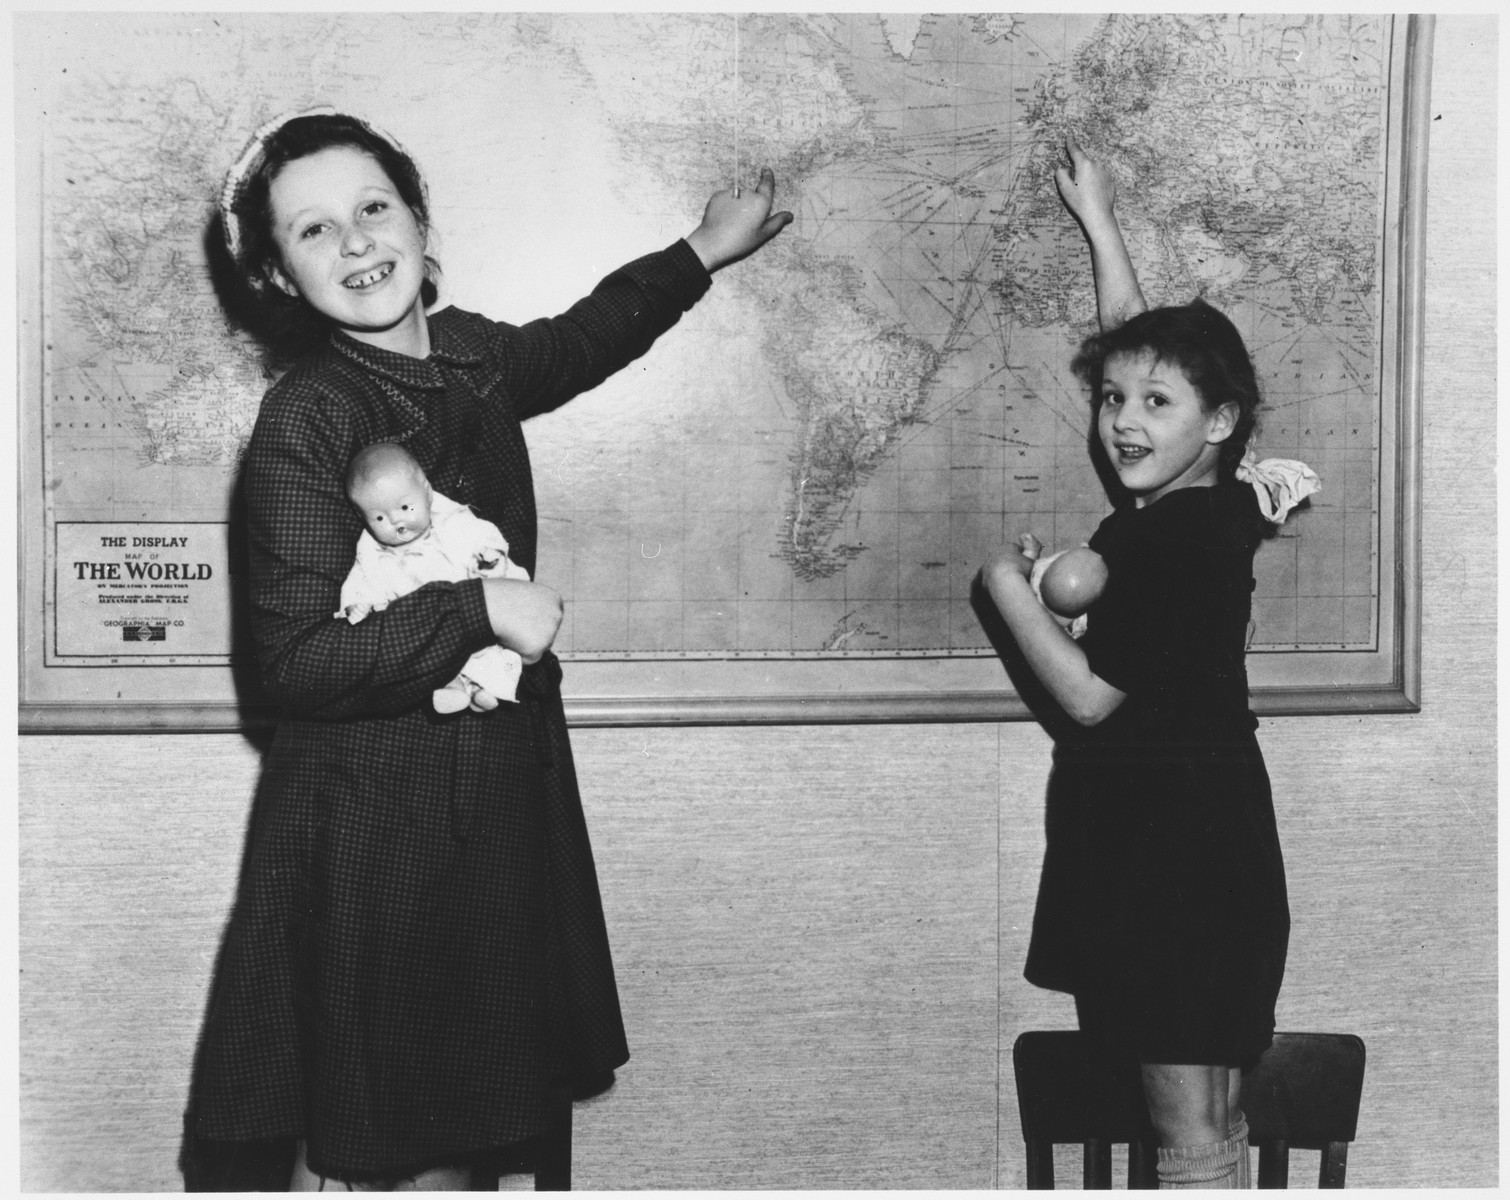 Two Jewish sisters, Dora and Marie Claire Rakowski point out their journey to America on a wall map soon after their immigration to the US.  This photograph was published in the Agudat Yisrael newspaper along with an article describing how the organization was sponsoring their immigration.